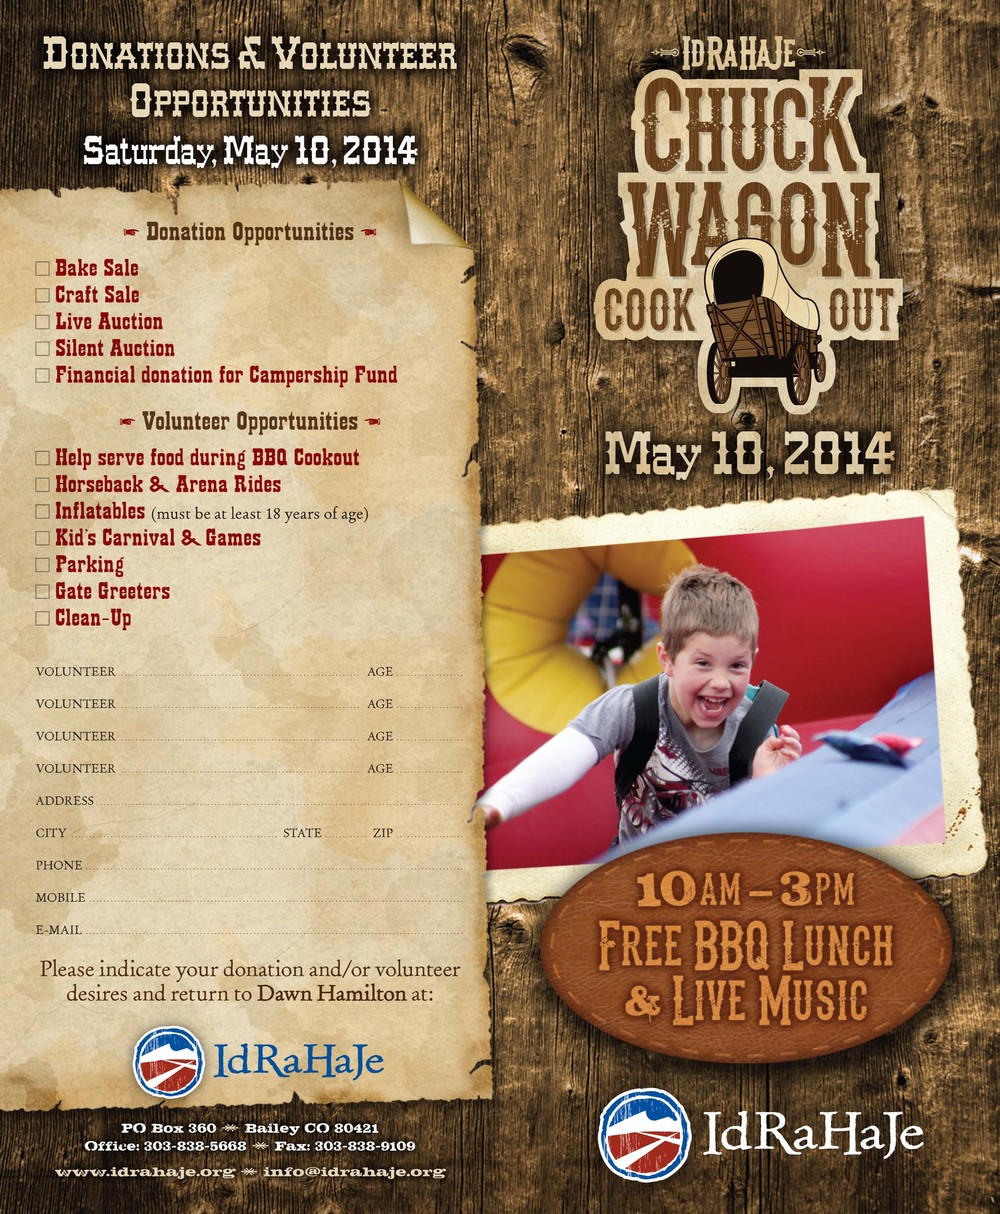 Chuckwagon brochure.jpg